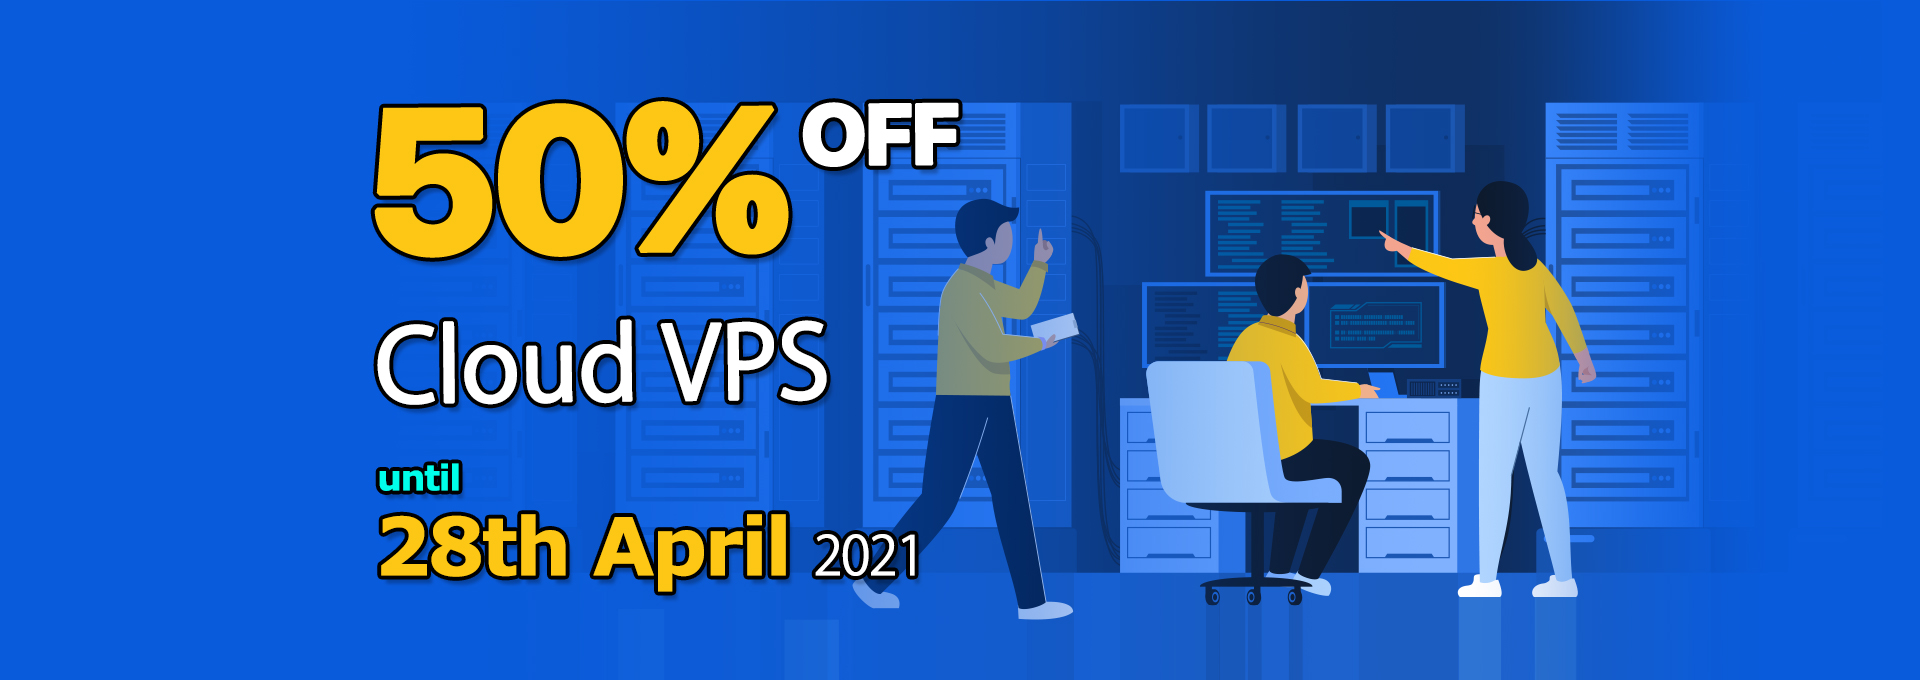 Cloud VPS 50% Off